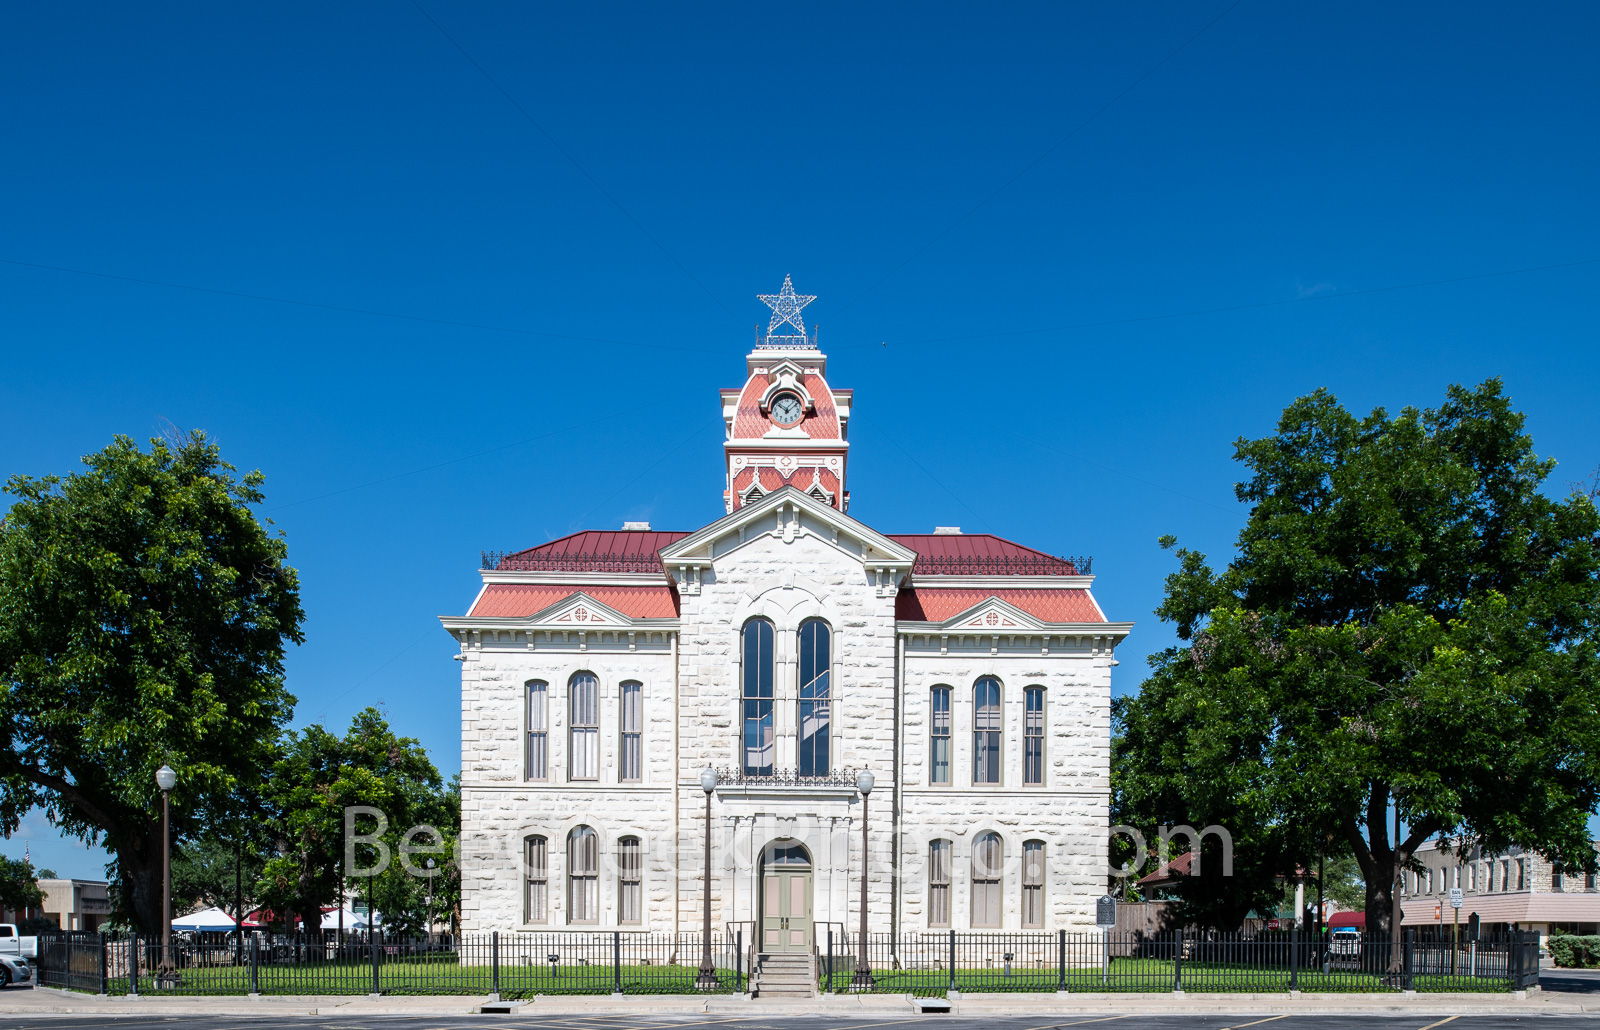 Lampasas County Courthouse - The Lampasas county courthouse was built in 1883. Lampasas County Courthouse is the third oldest...